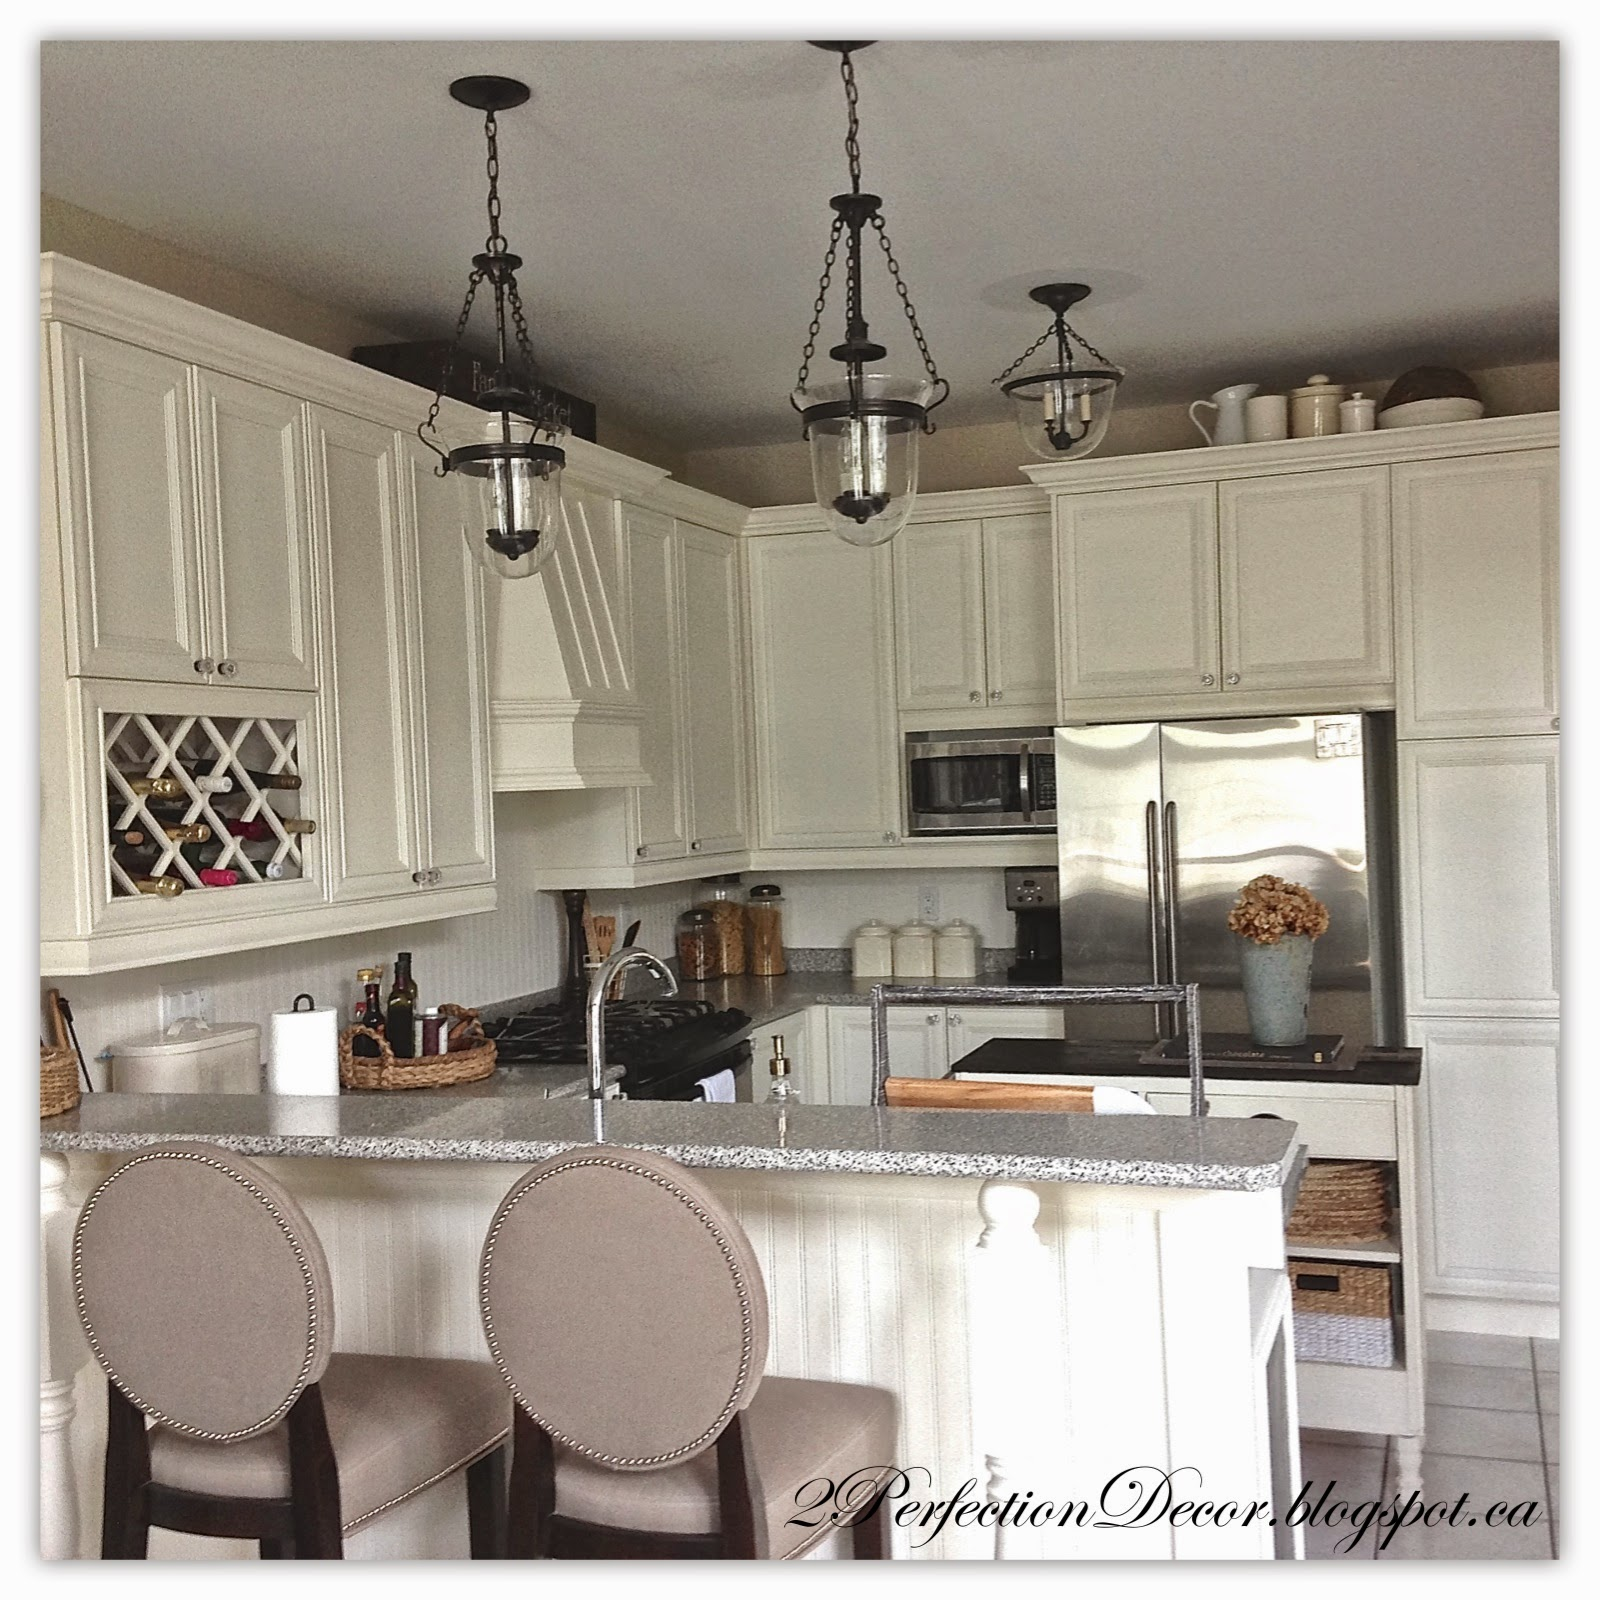 Pottery Barn Kitchen 2perfection Decor Painted French Country Kitchen Reveal